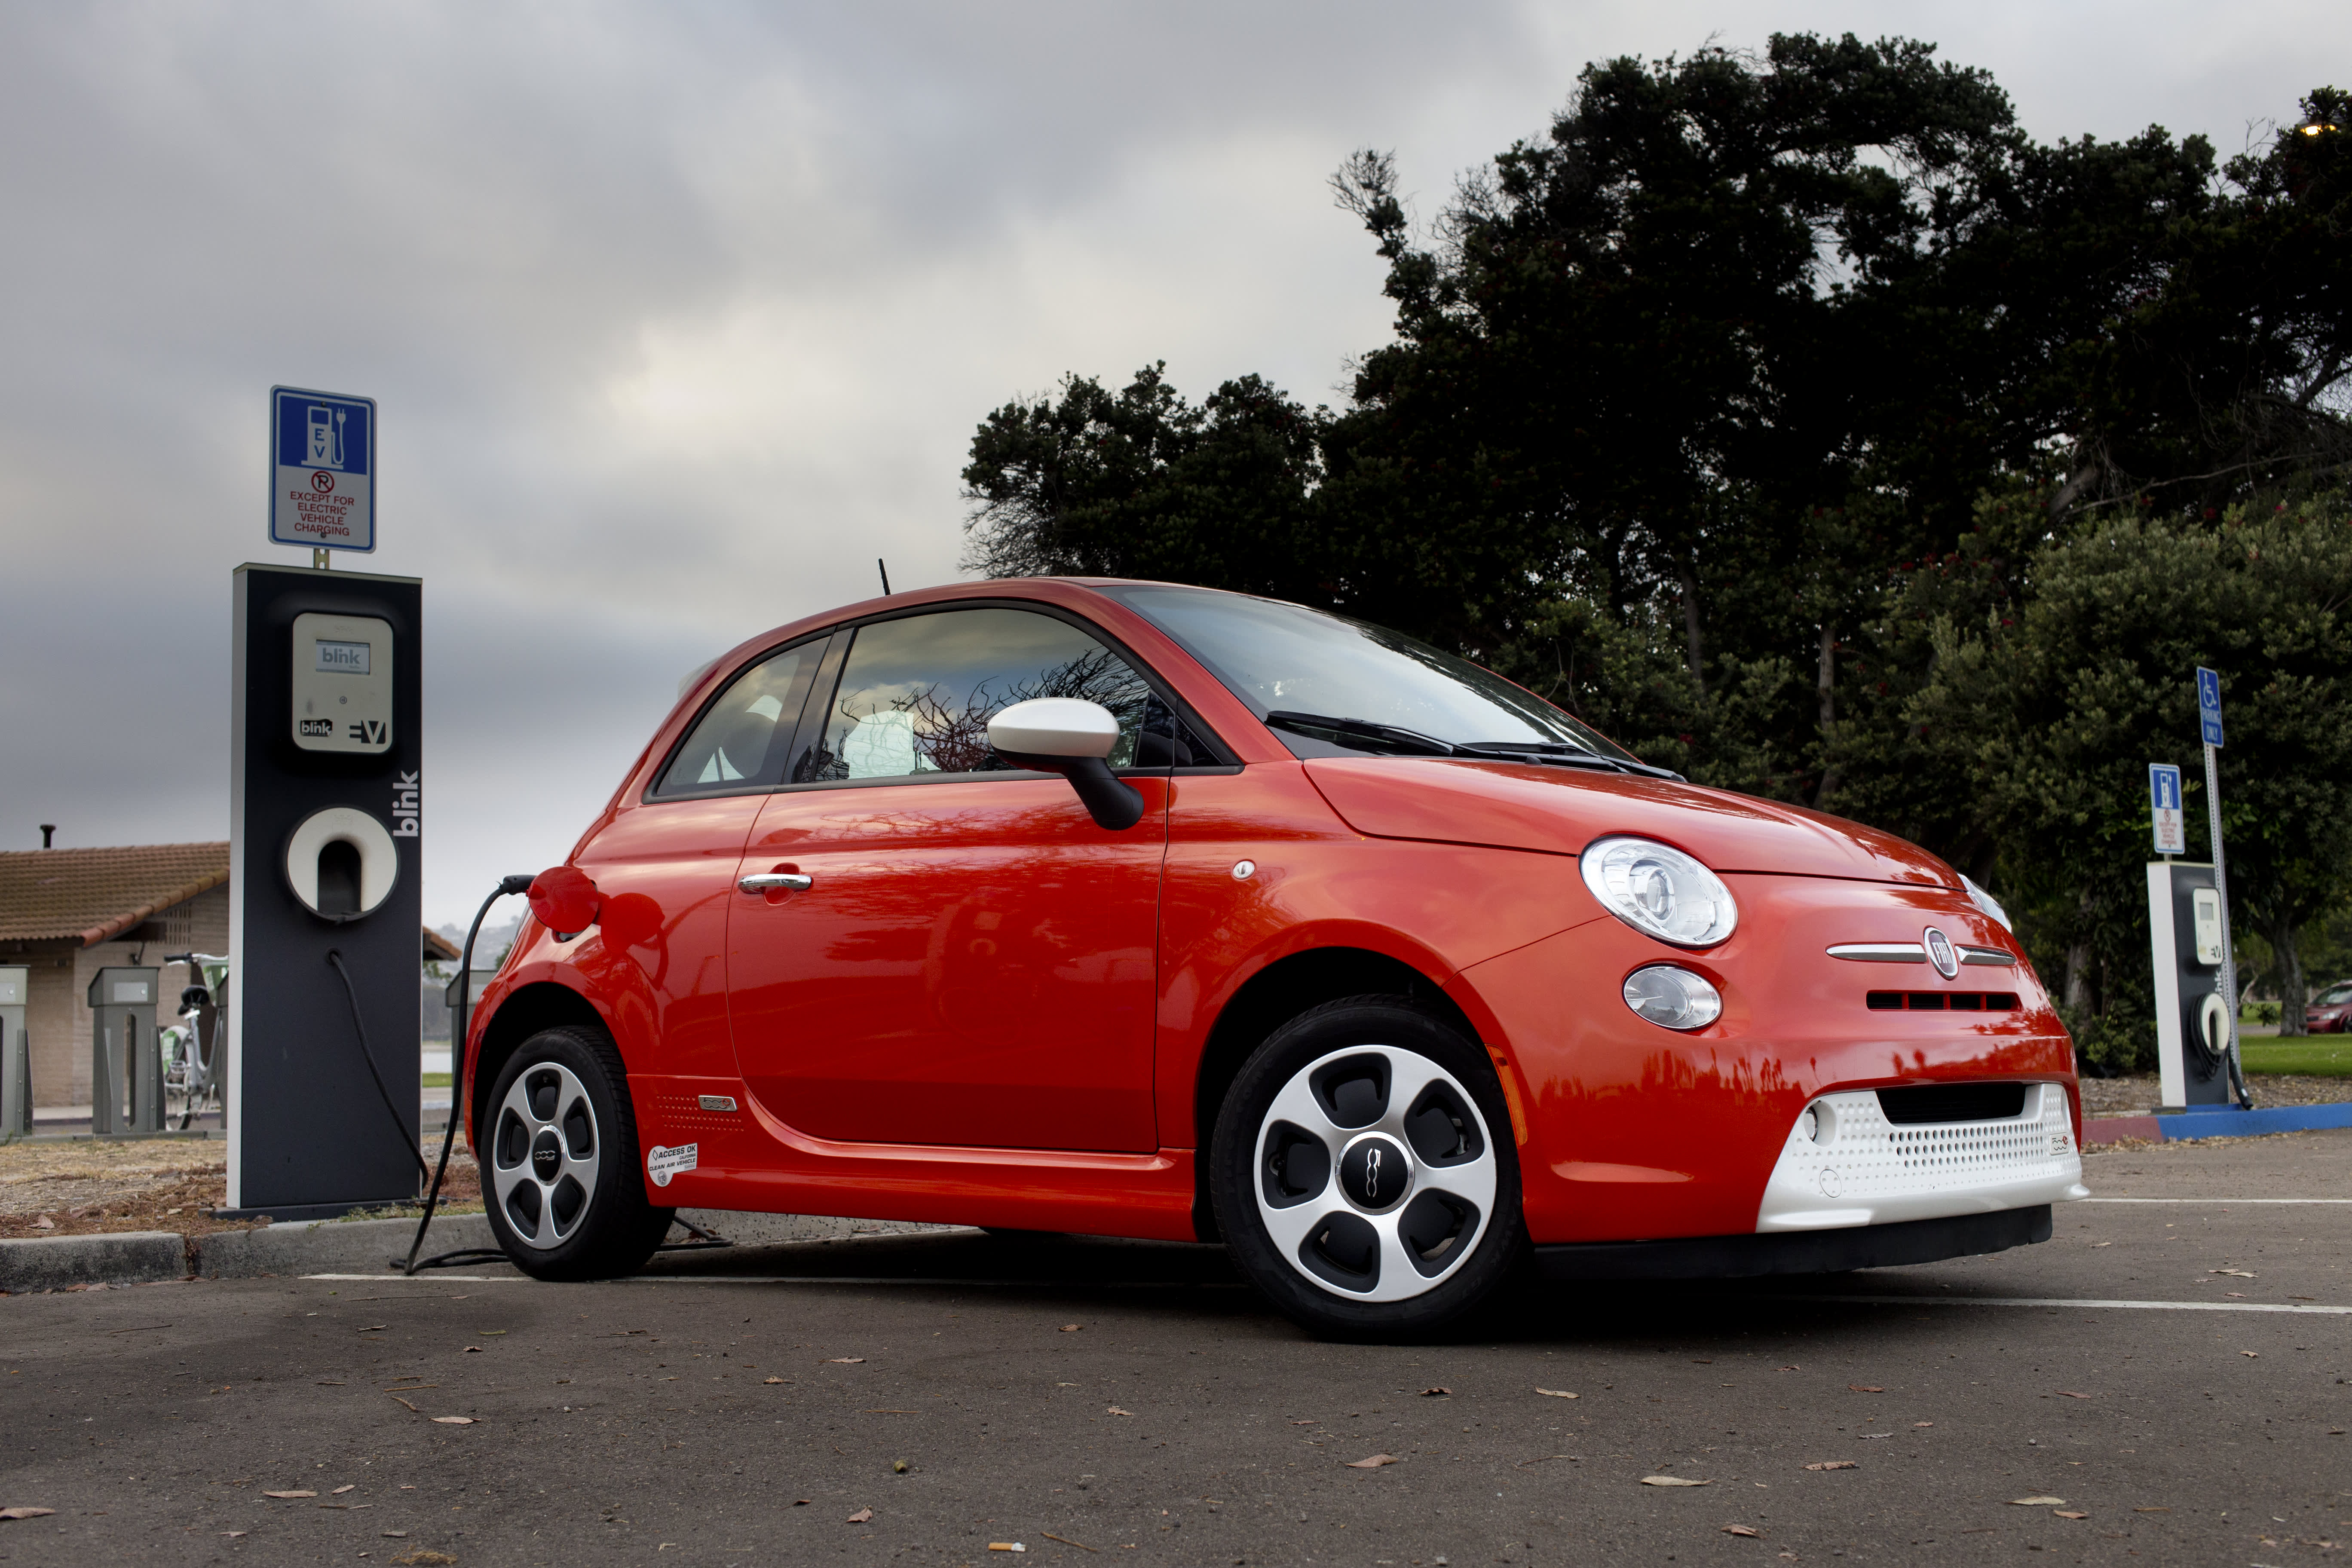 Used Ev Depreciation Means Good Deals On Used Electric Cars Autoblog